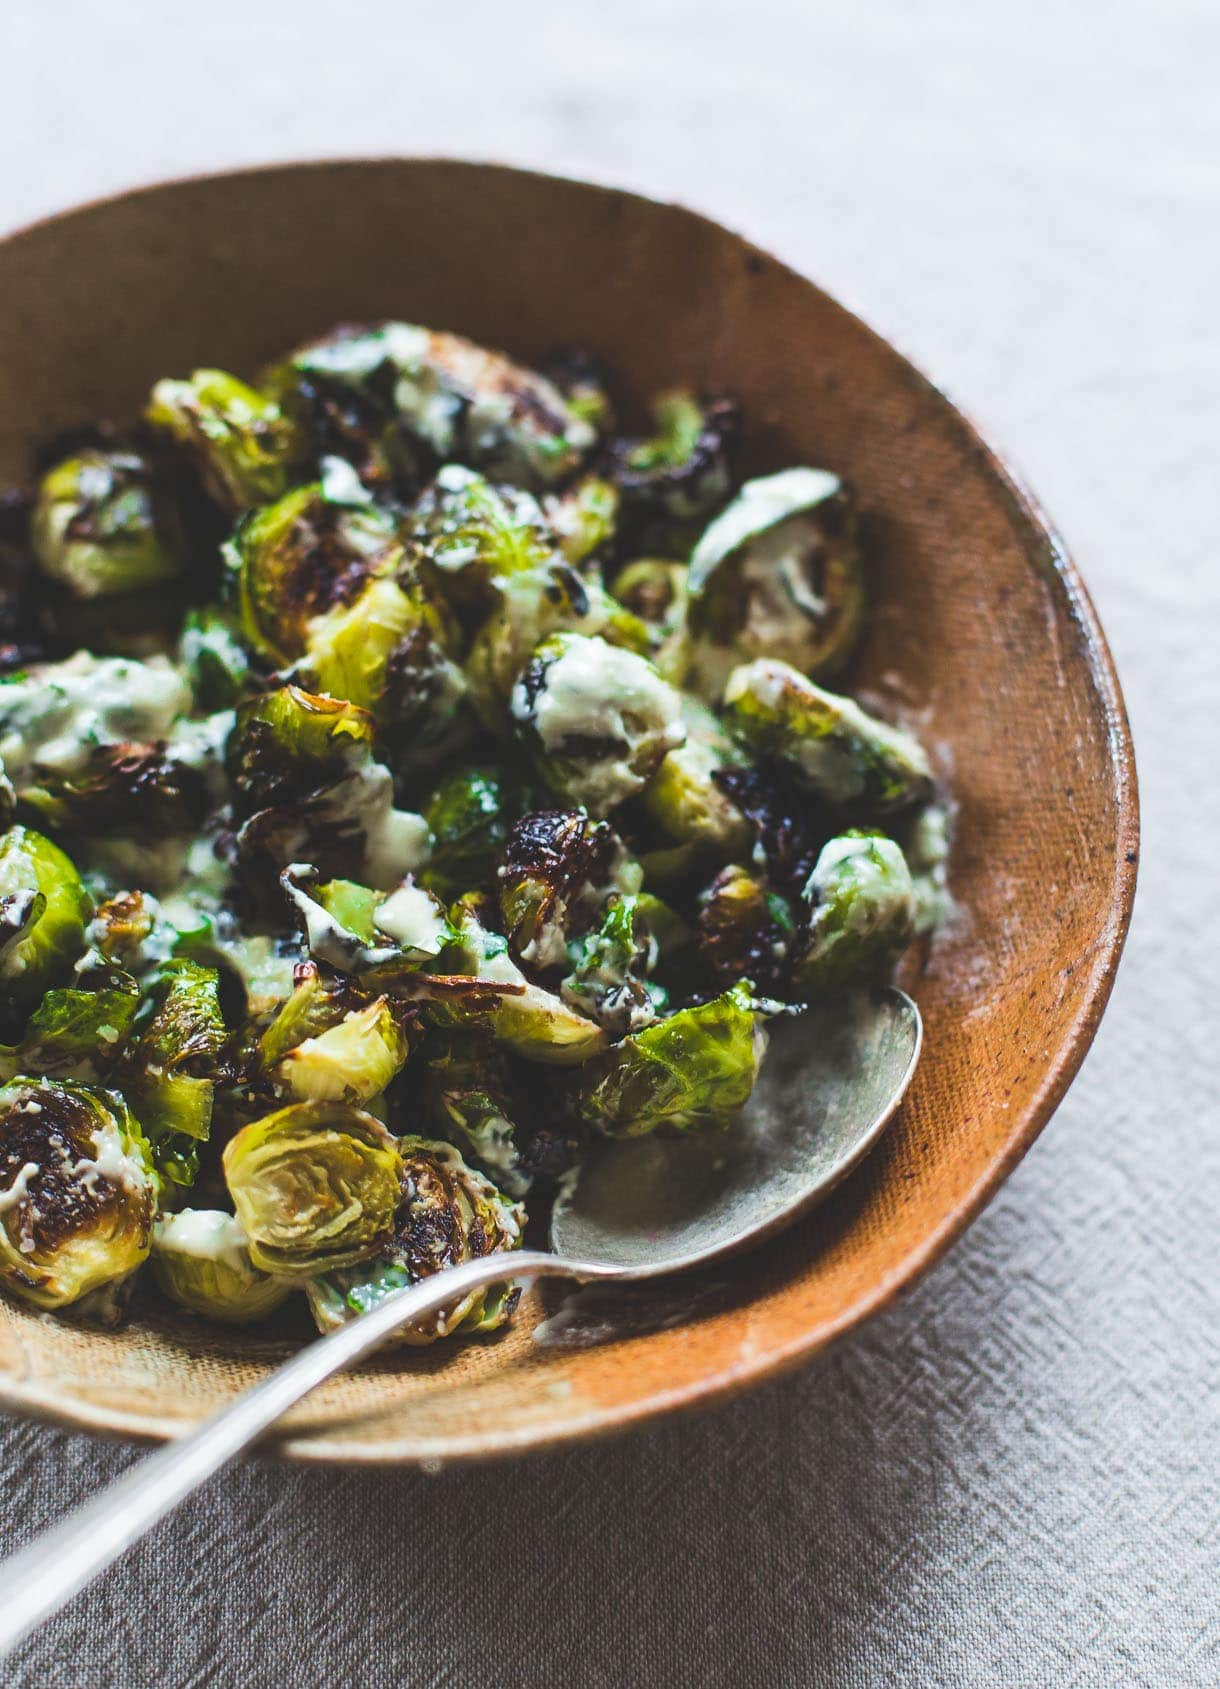 Vegan Roasted Brussels Sprouts with Lemon Tahini Sauce